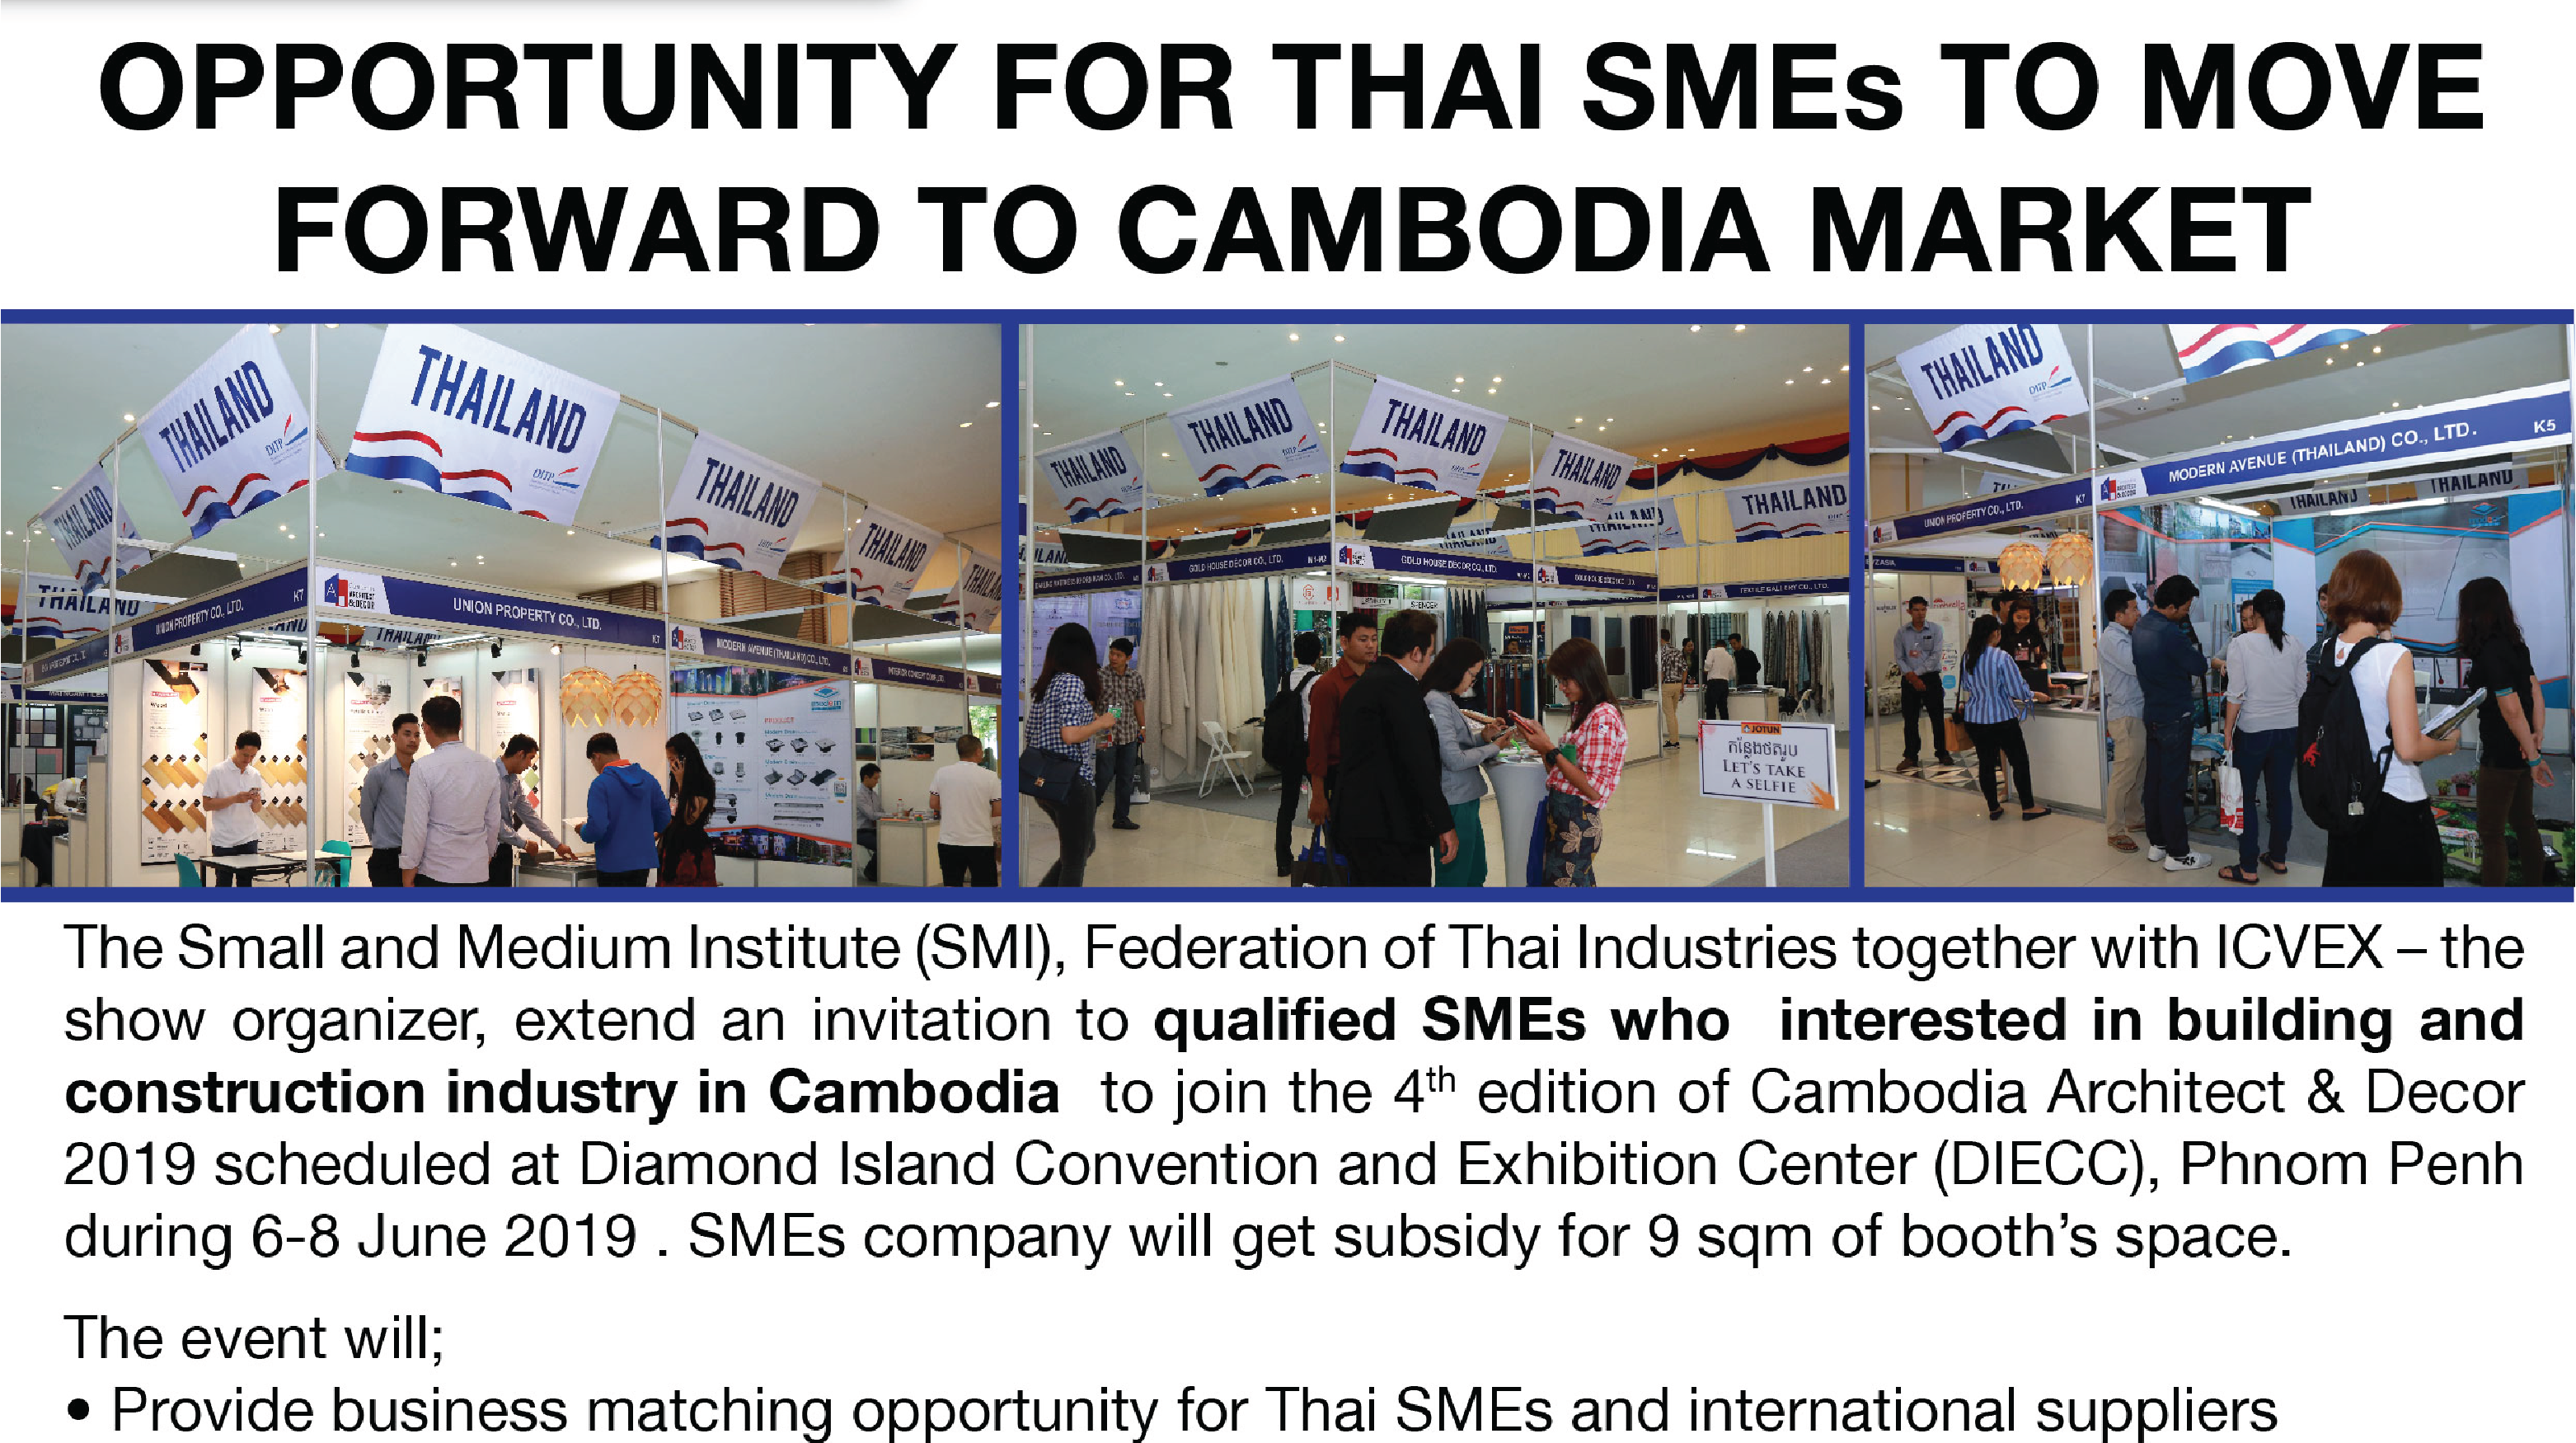 Opportunity for Thai SMEs to Move Forward to Cambodia Market